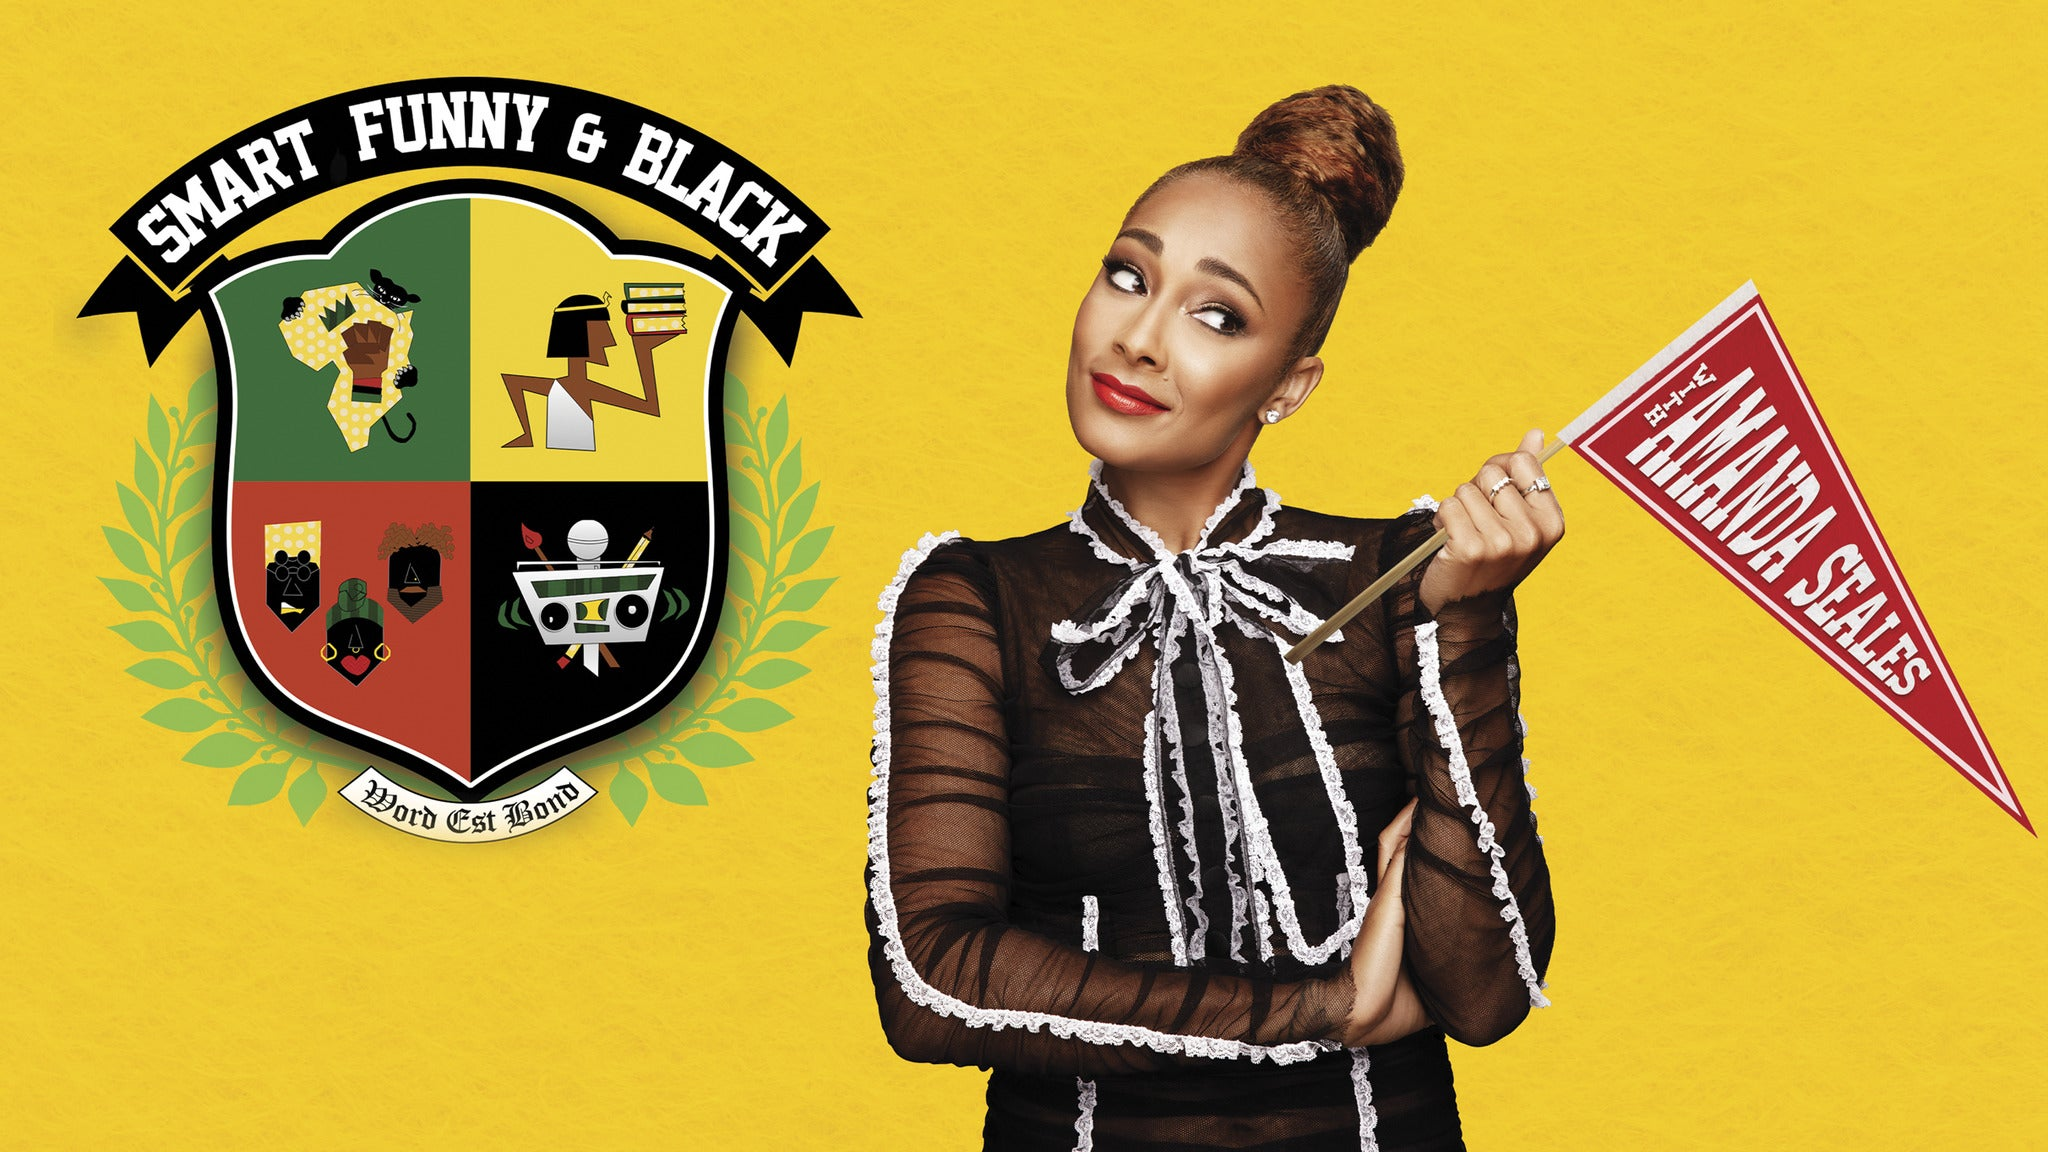 Smart, Funny & Black with Amanda Seales